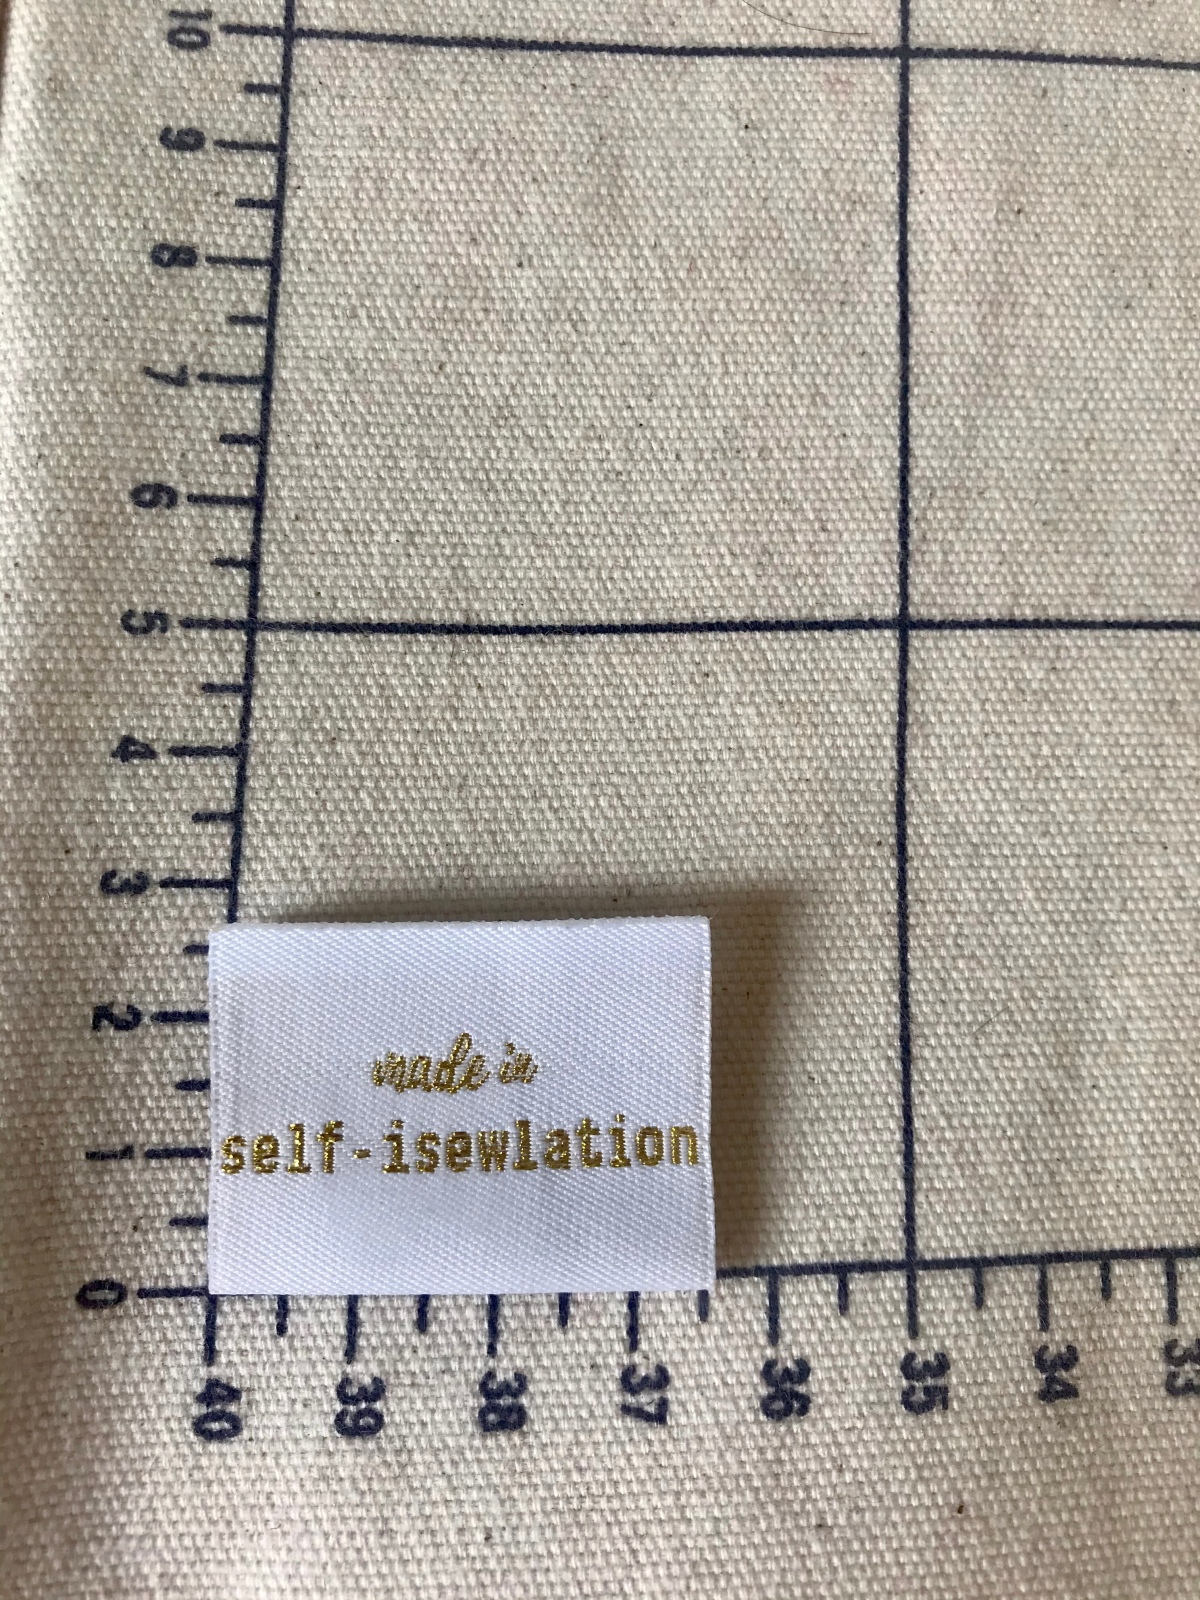 Made in self-isewlation : sewing forgood